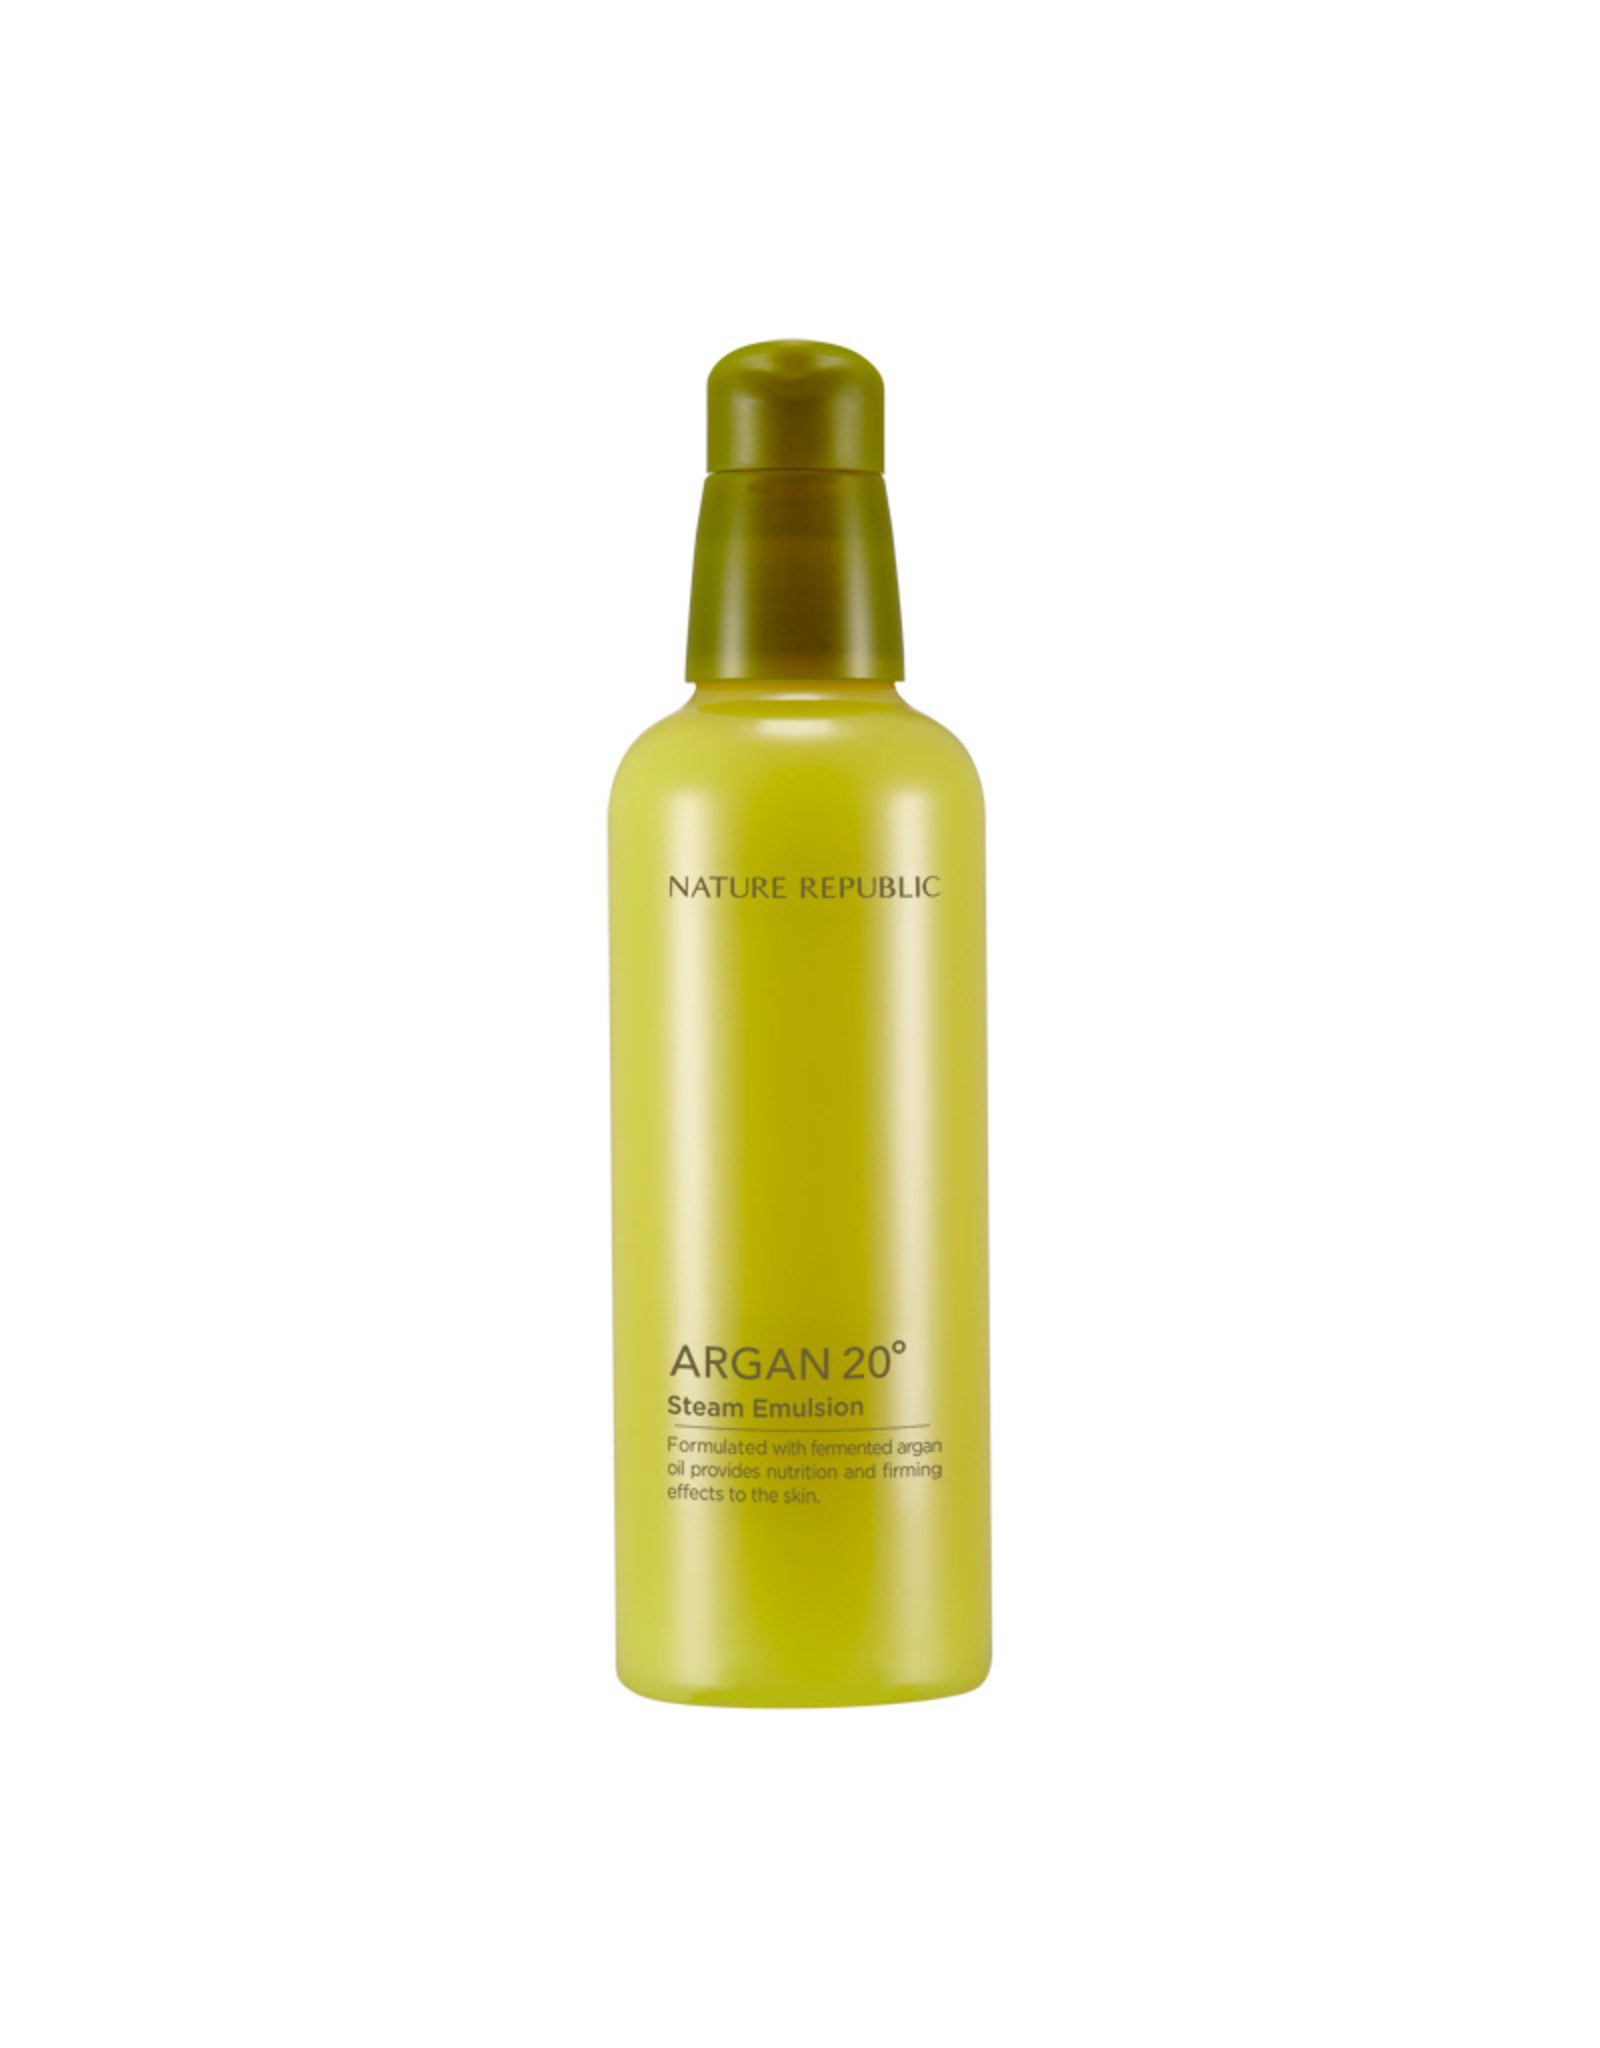 Argan 20º Steam Emulsion